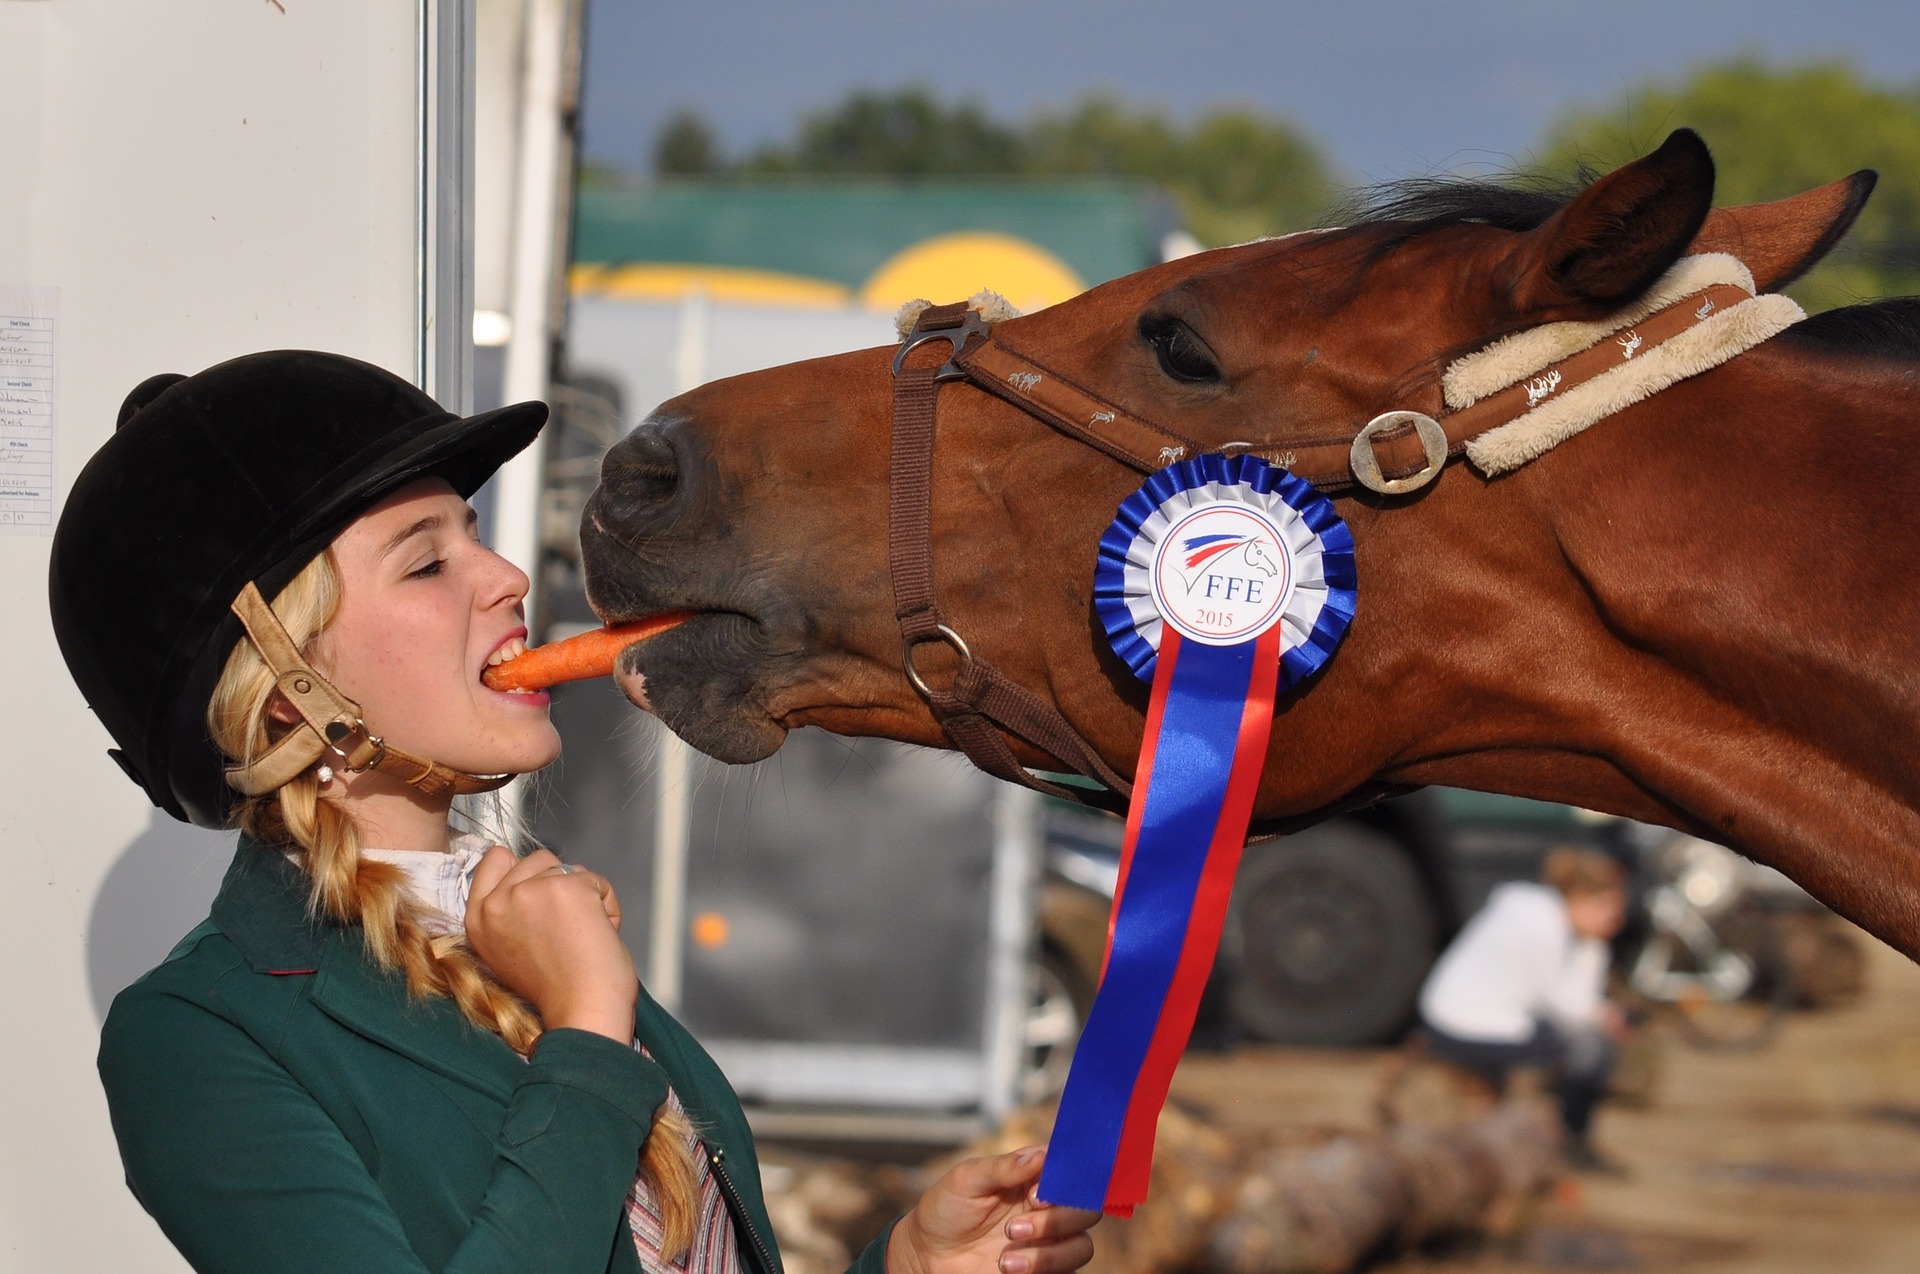 Horse rider shared after winning match